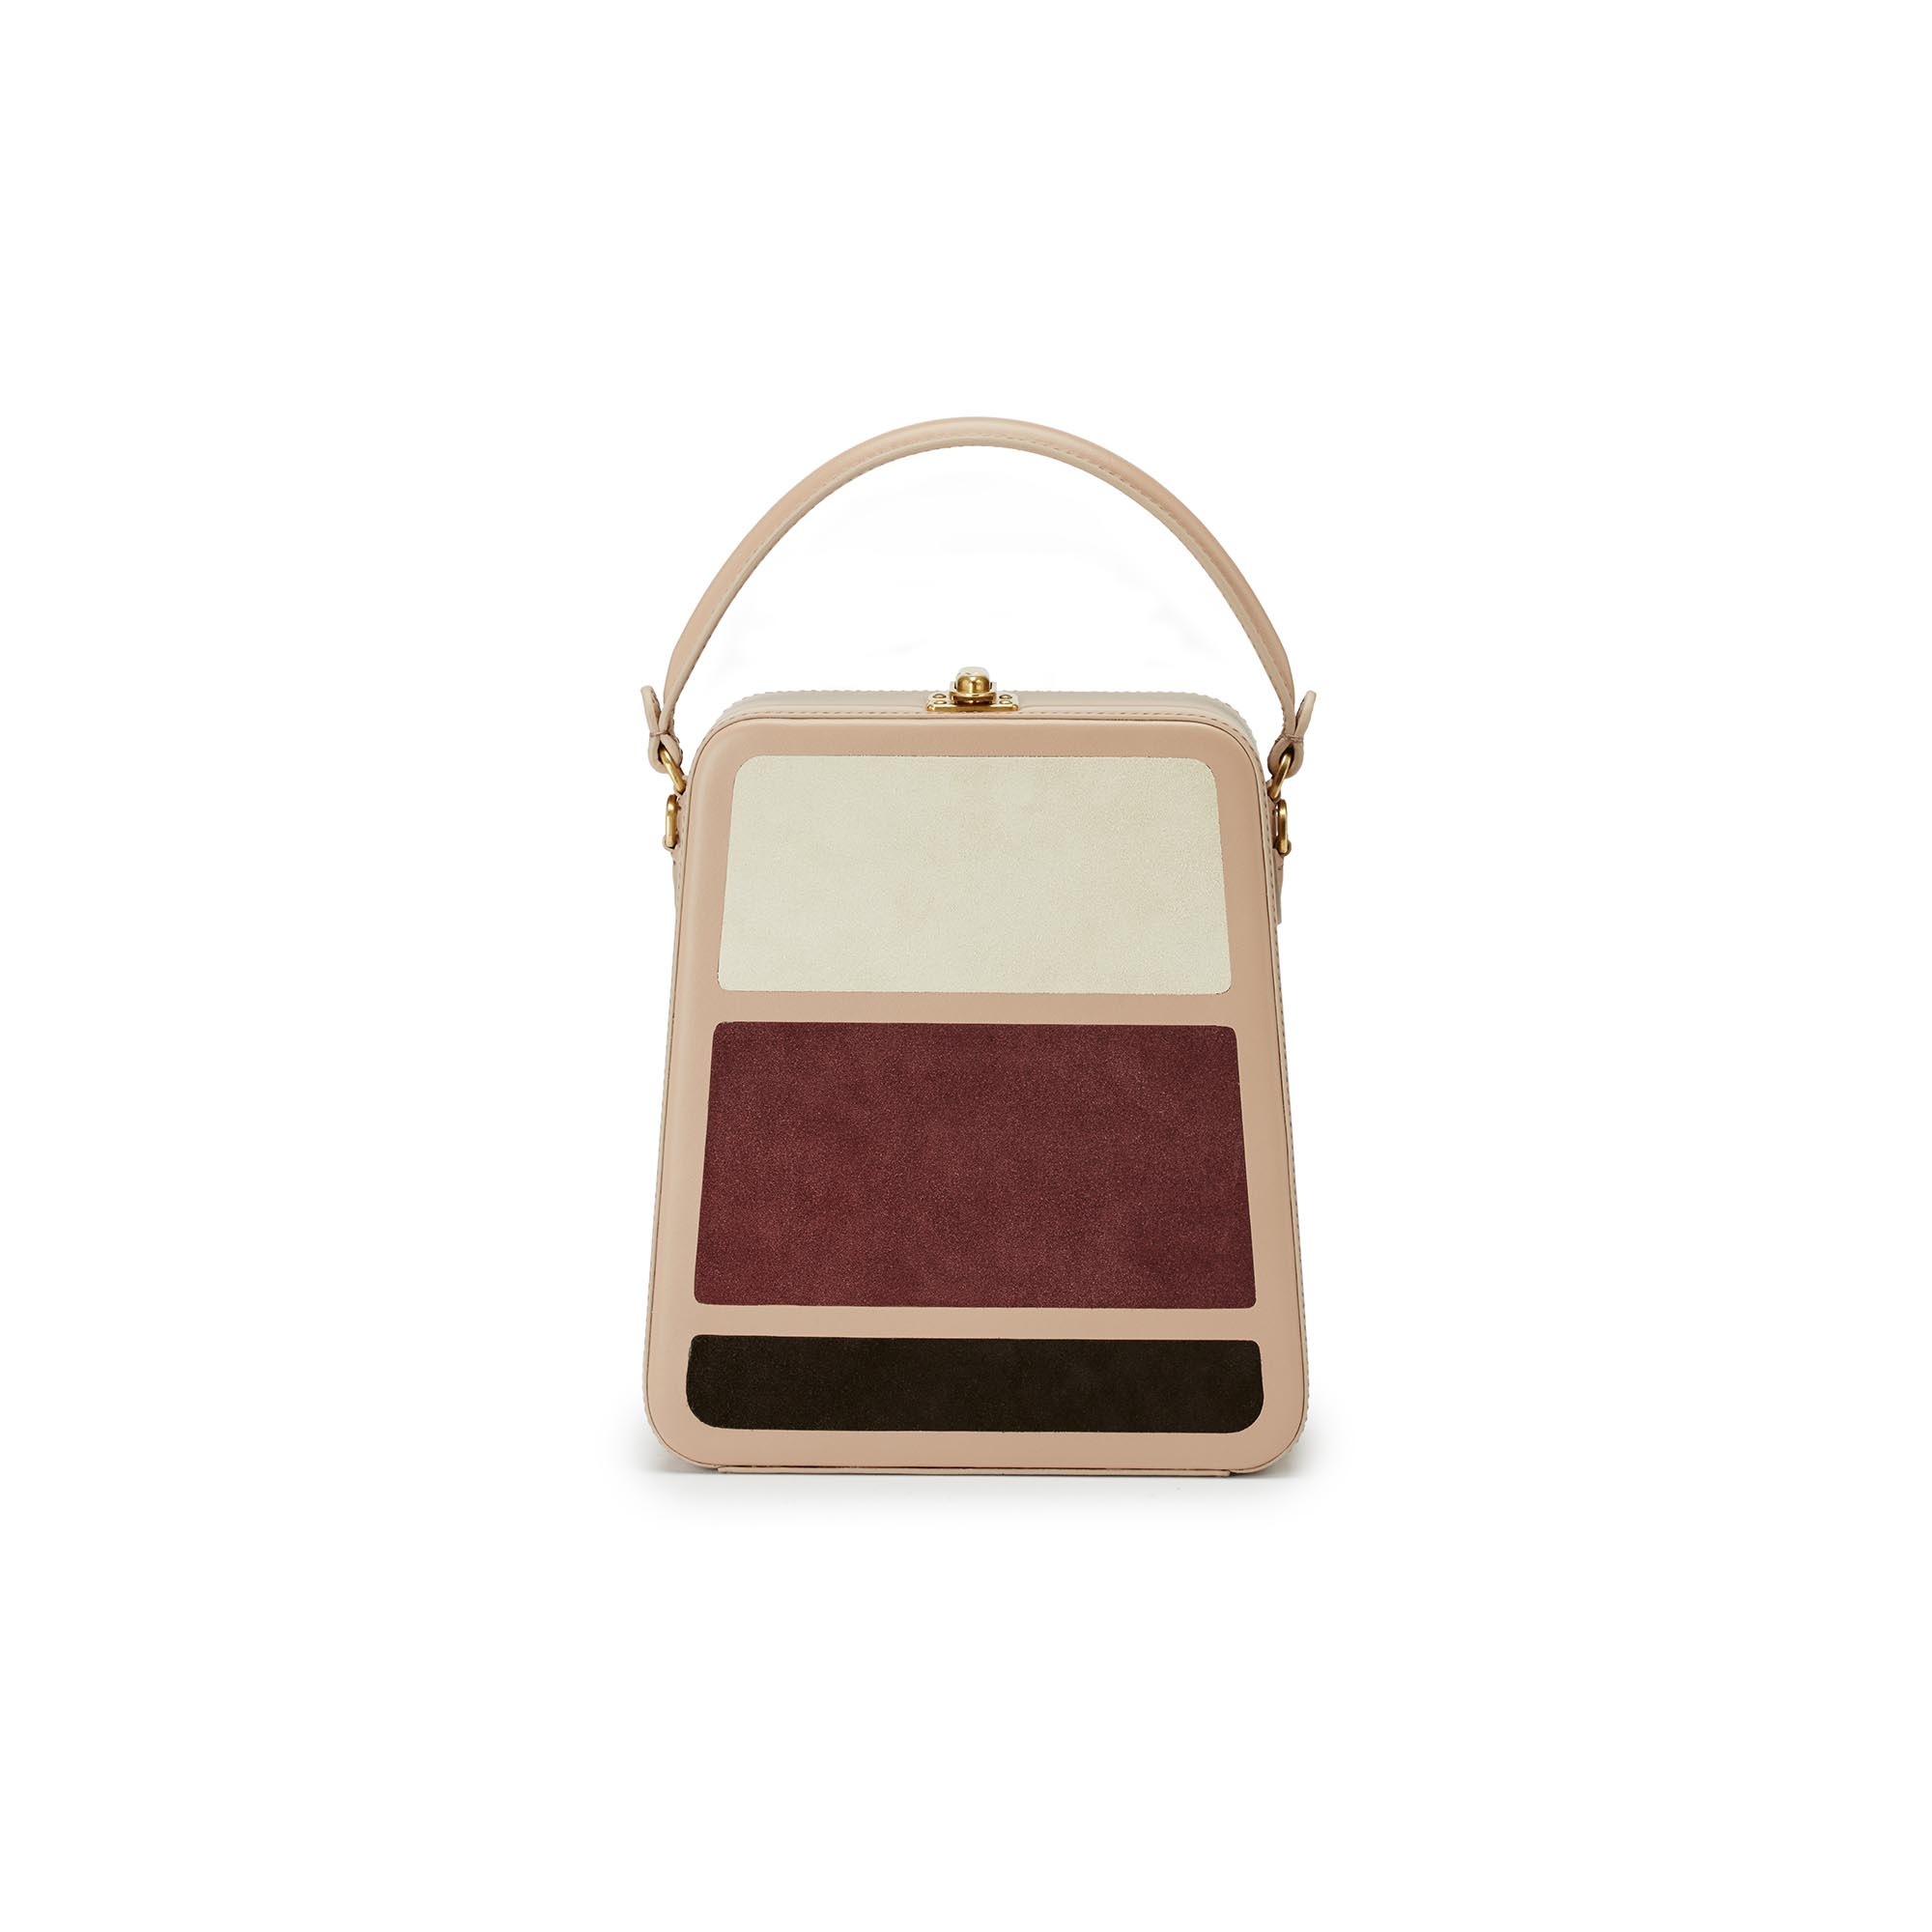 Tall-Bertoncina-rose-ivory-wine-suede-bag-Bertoni-1949_01